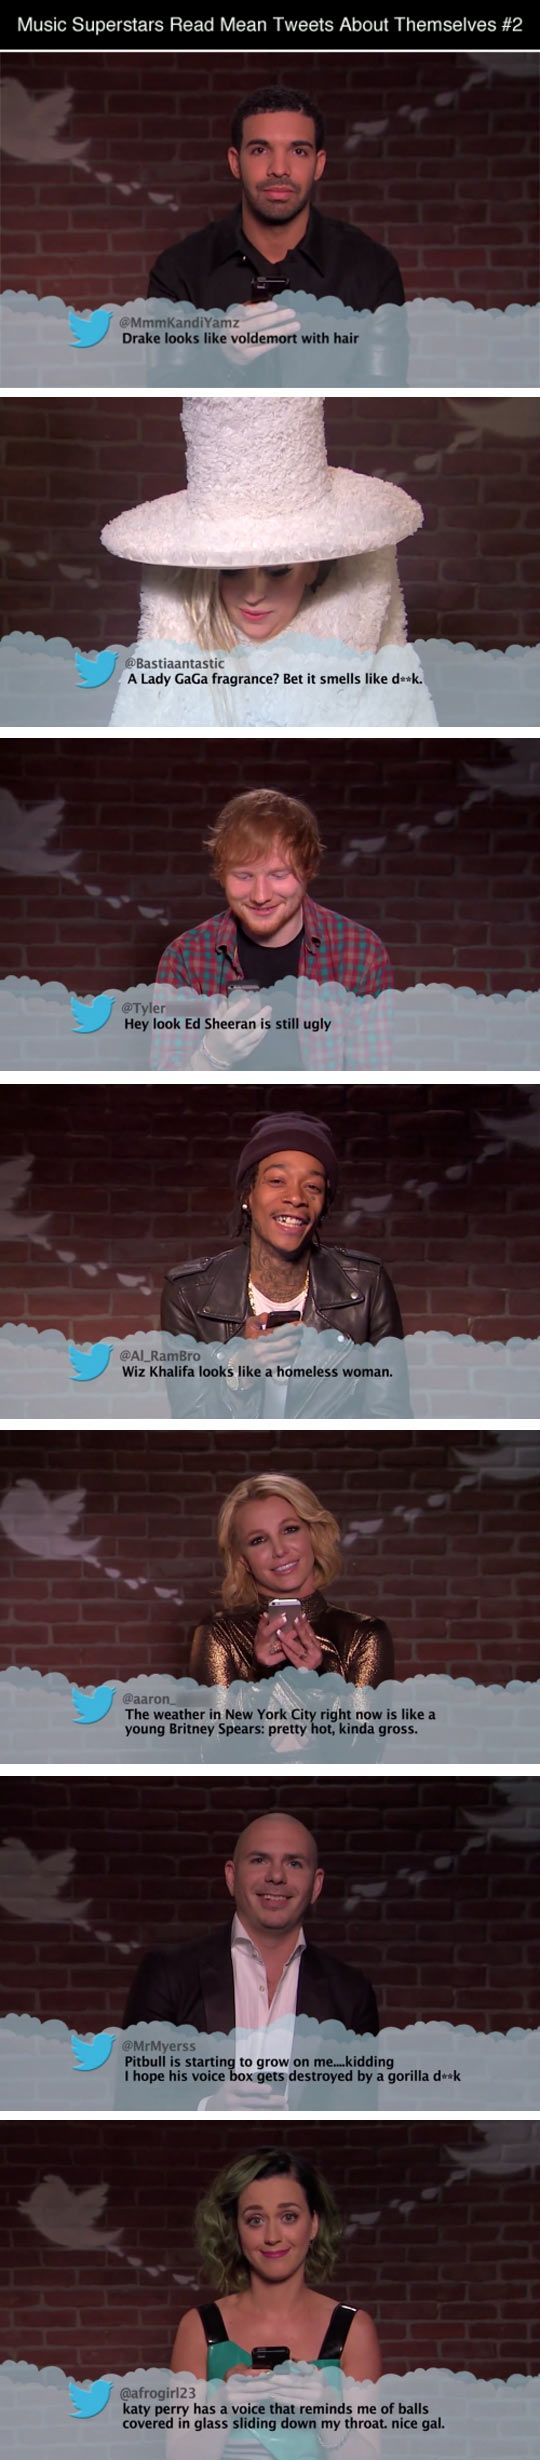 Best Images About Celebrities Read Mean Tweets On Pinterest - Sochi problems tweets